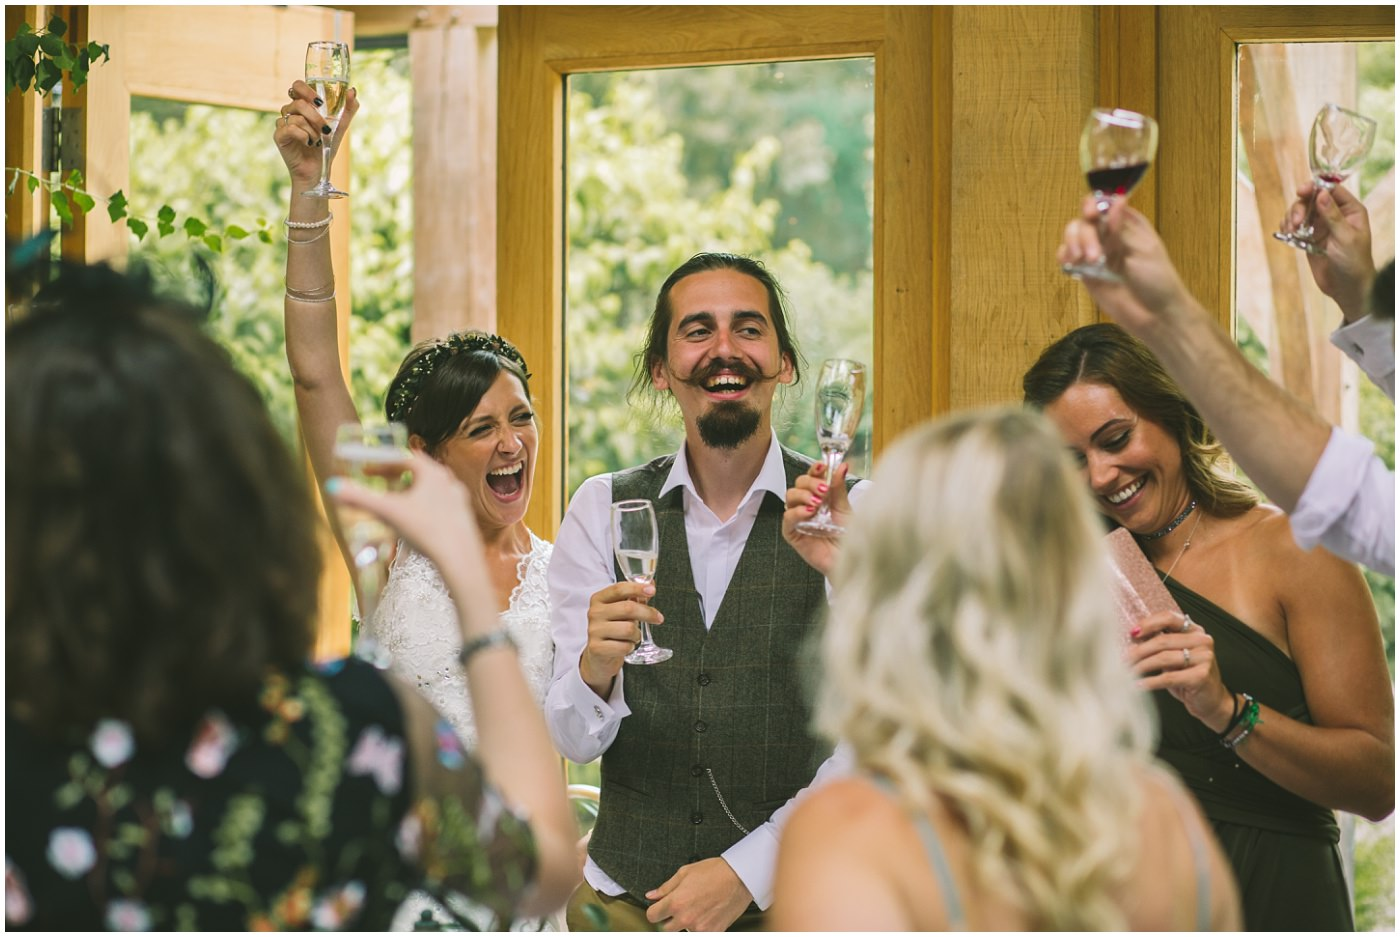 bride and groom raise a glass in toast